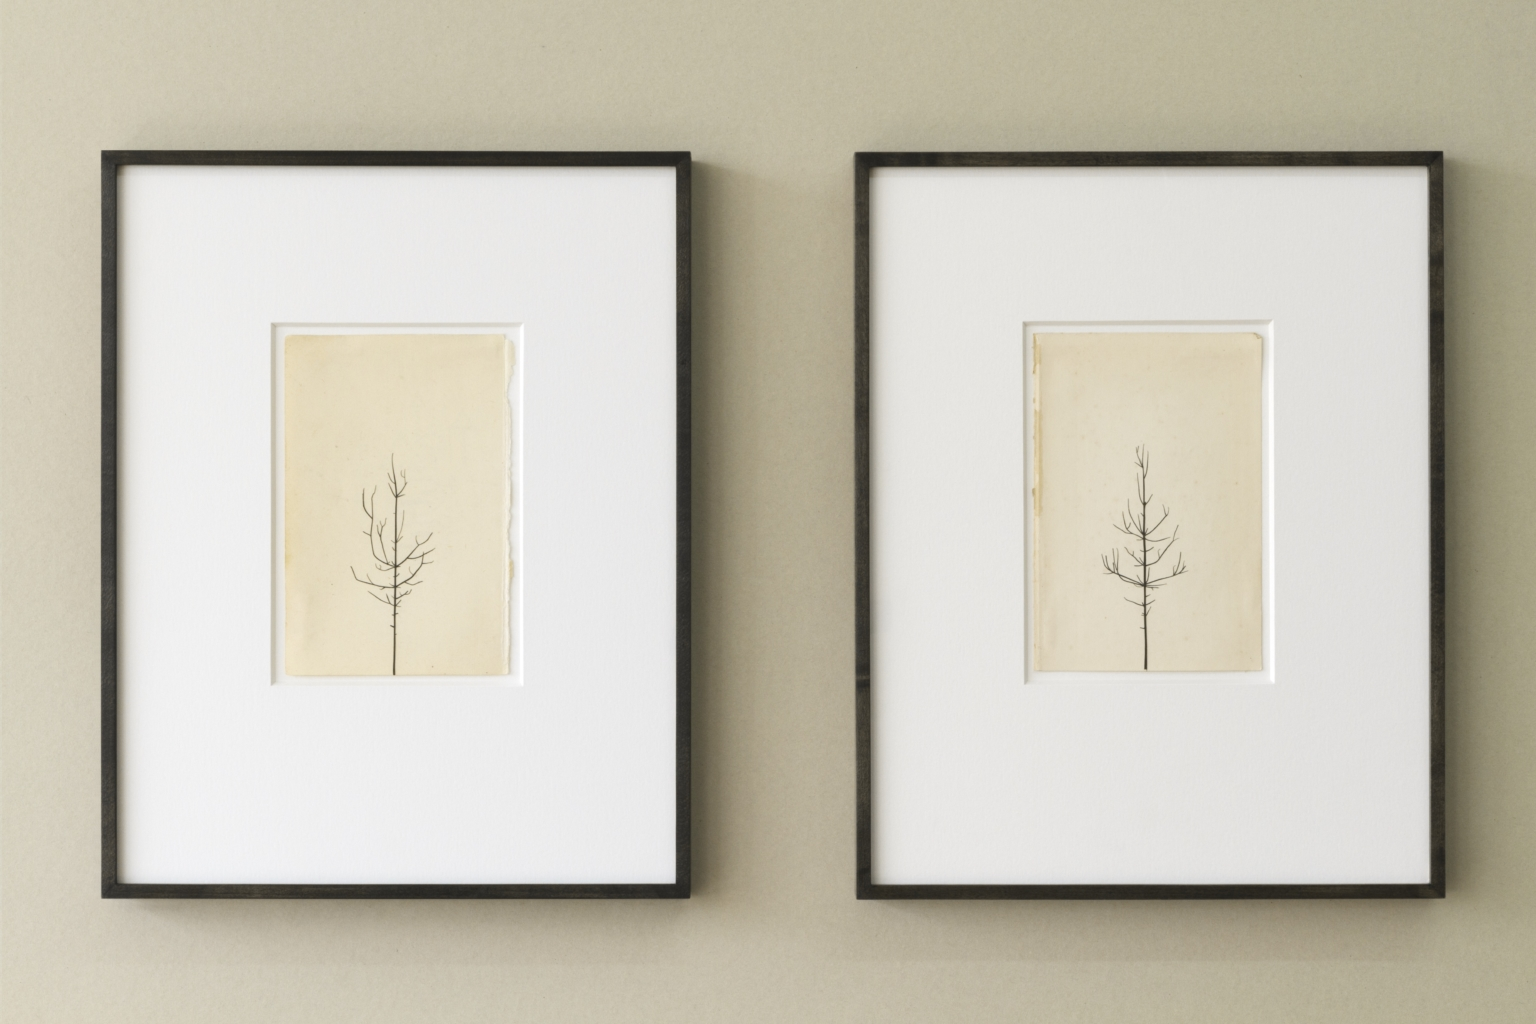 Peter Liversidge, Winter Drawing 15vs14; Winter Drawing 18vs16, 2017, £6000 (these works are unique). Copyright 2017, the artist. All rights reserved